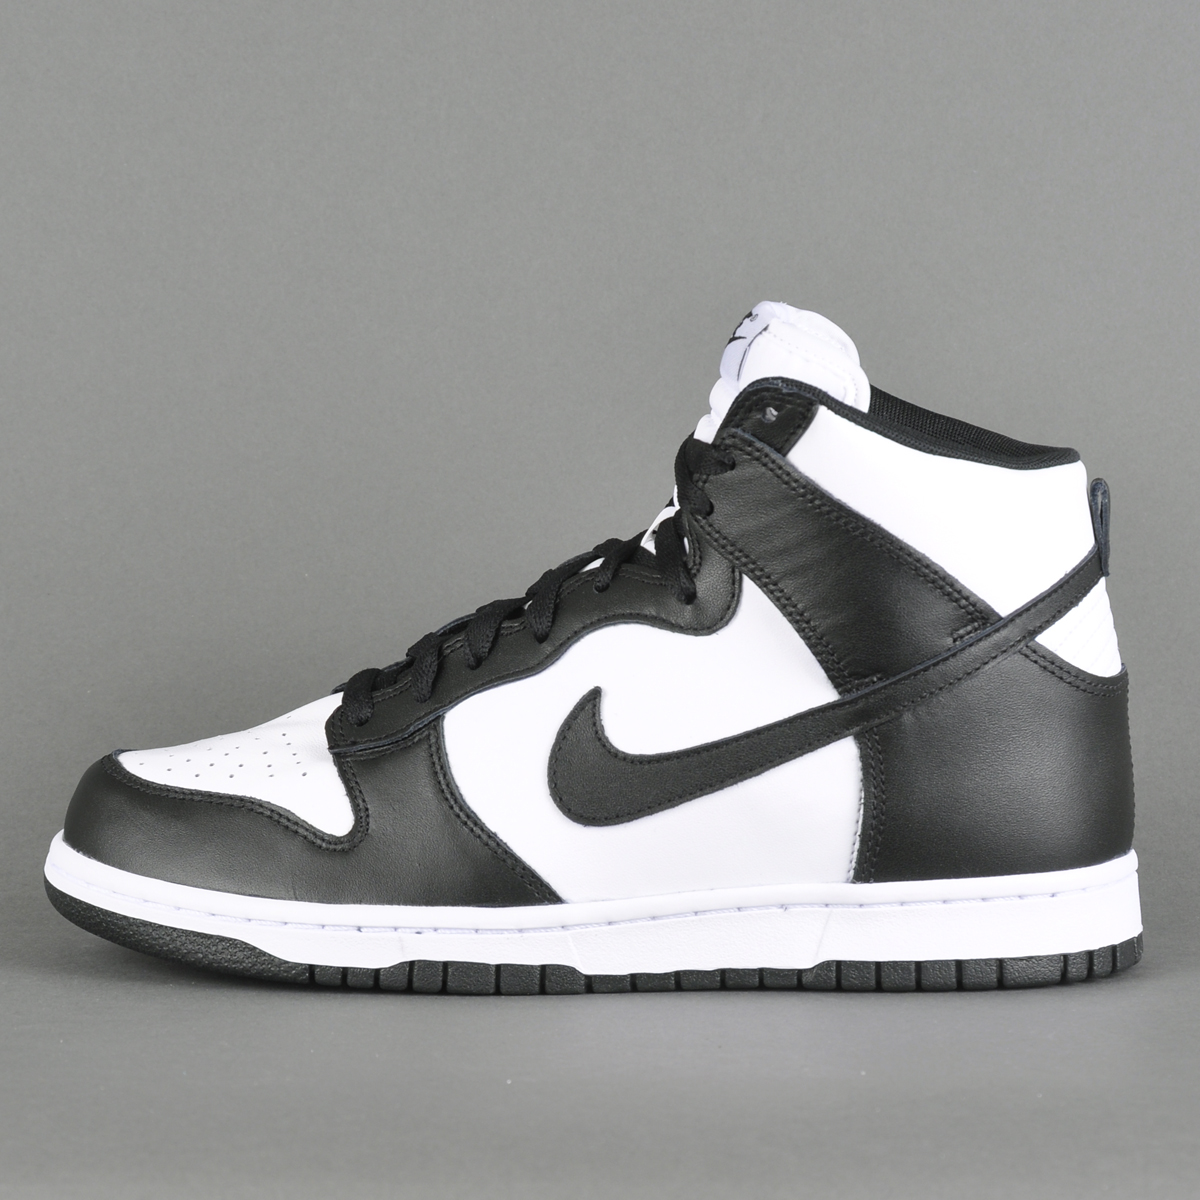 watch 5afb9 66de4 ... cheap nike dunks retro high black 6a987 d24a5